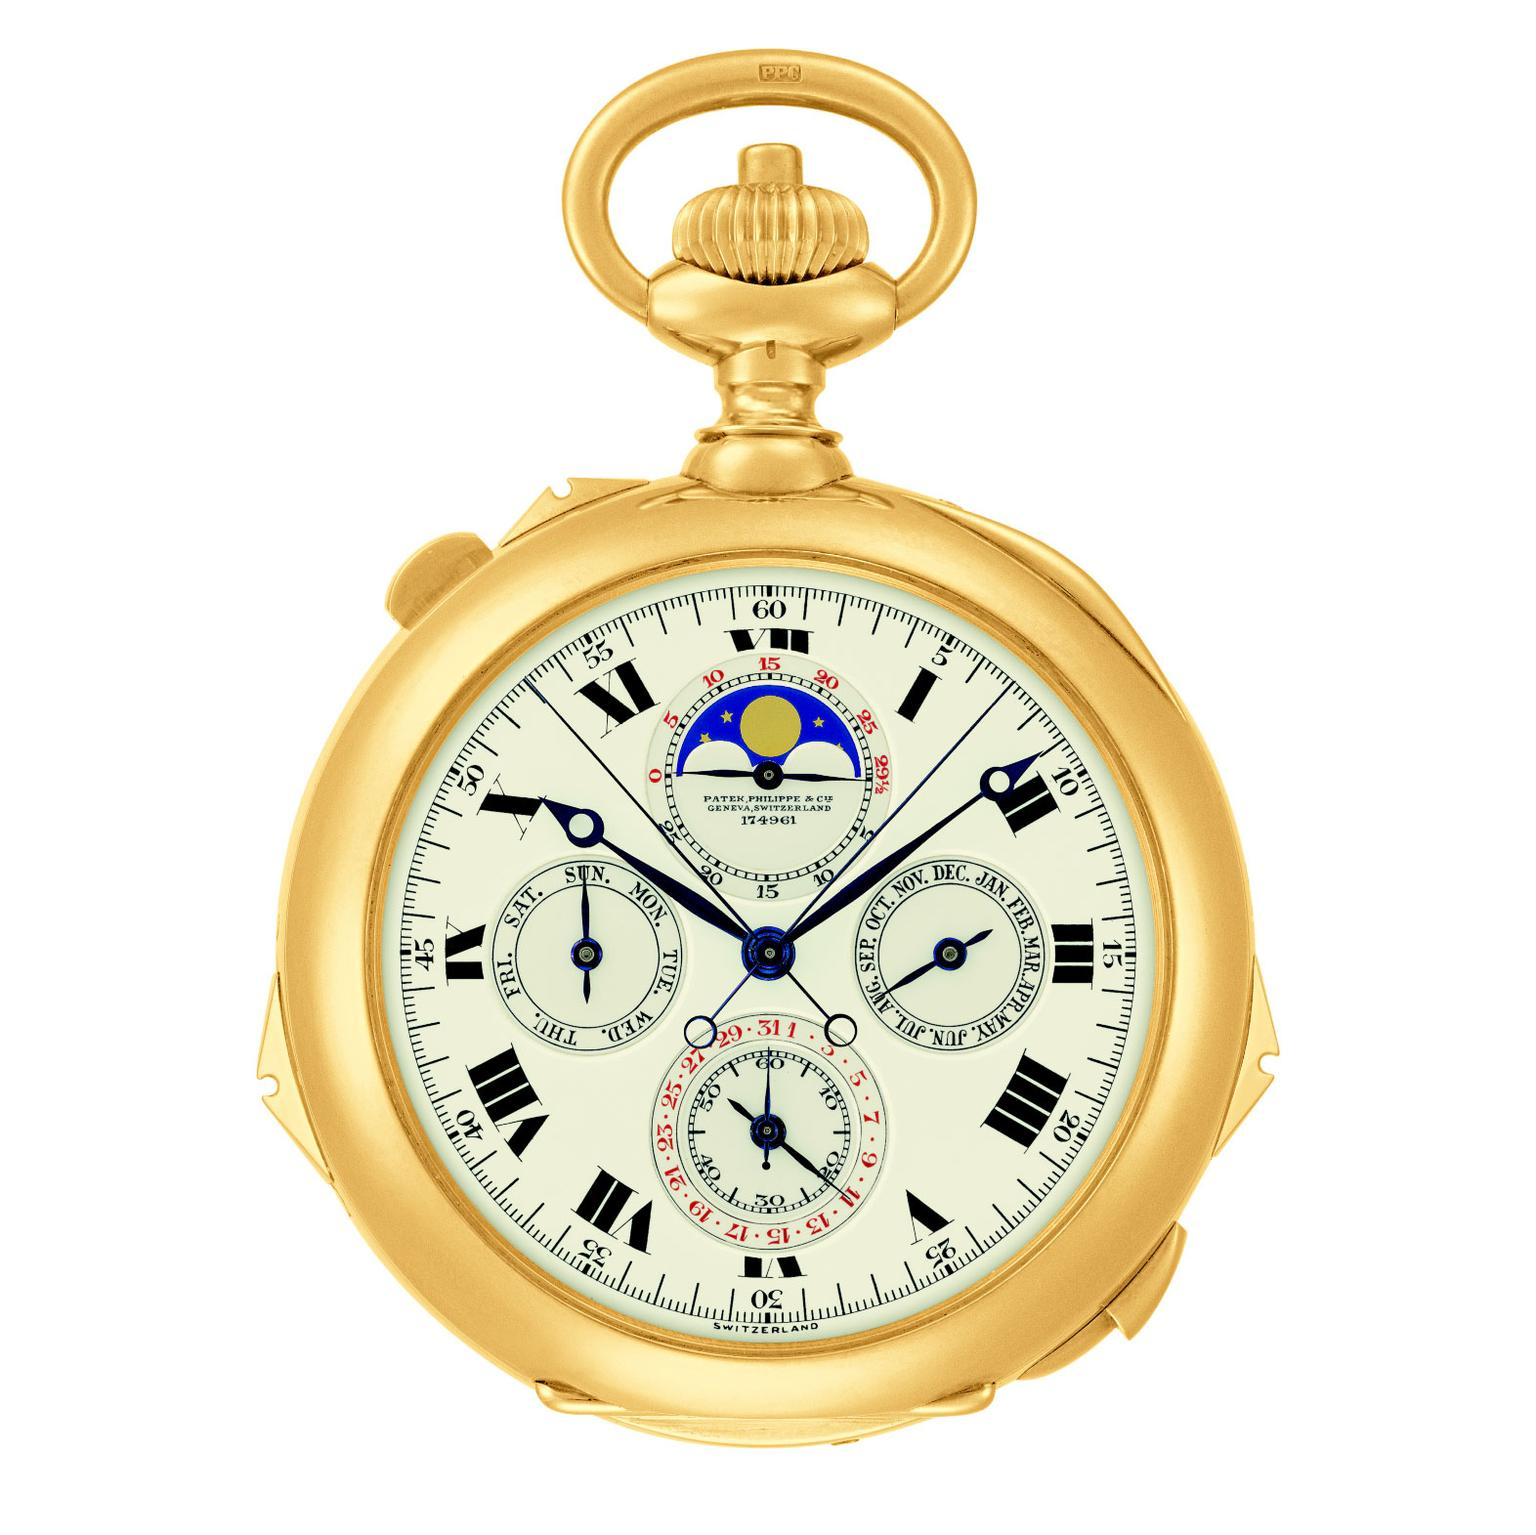 Patek Philippe's Henry Graves Supercomplication pocket watch 1926